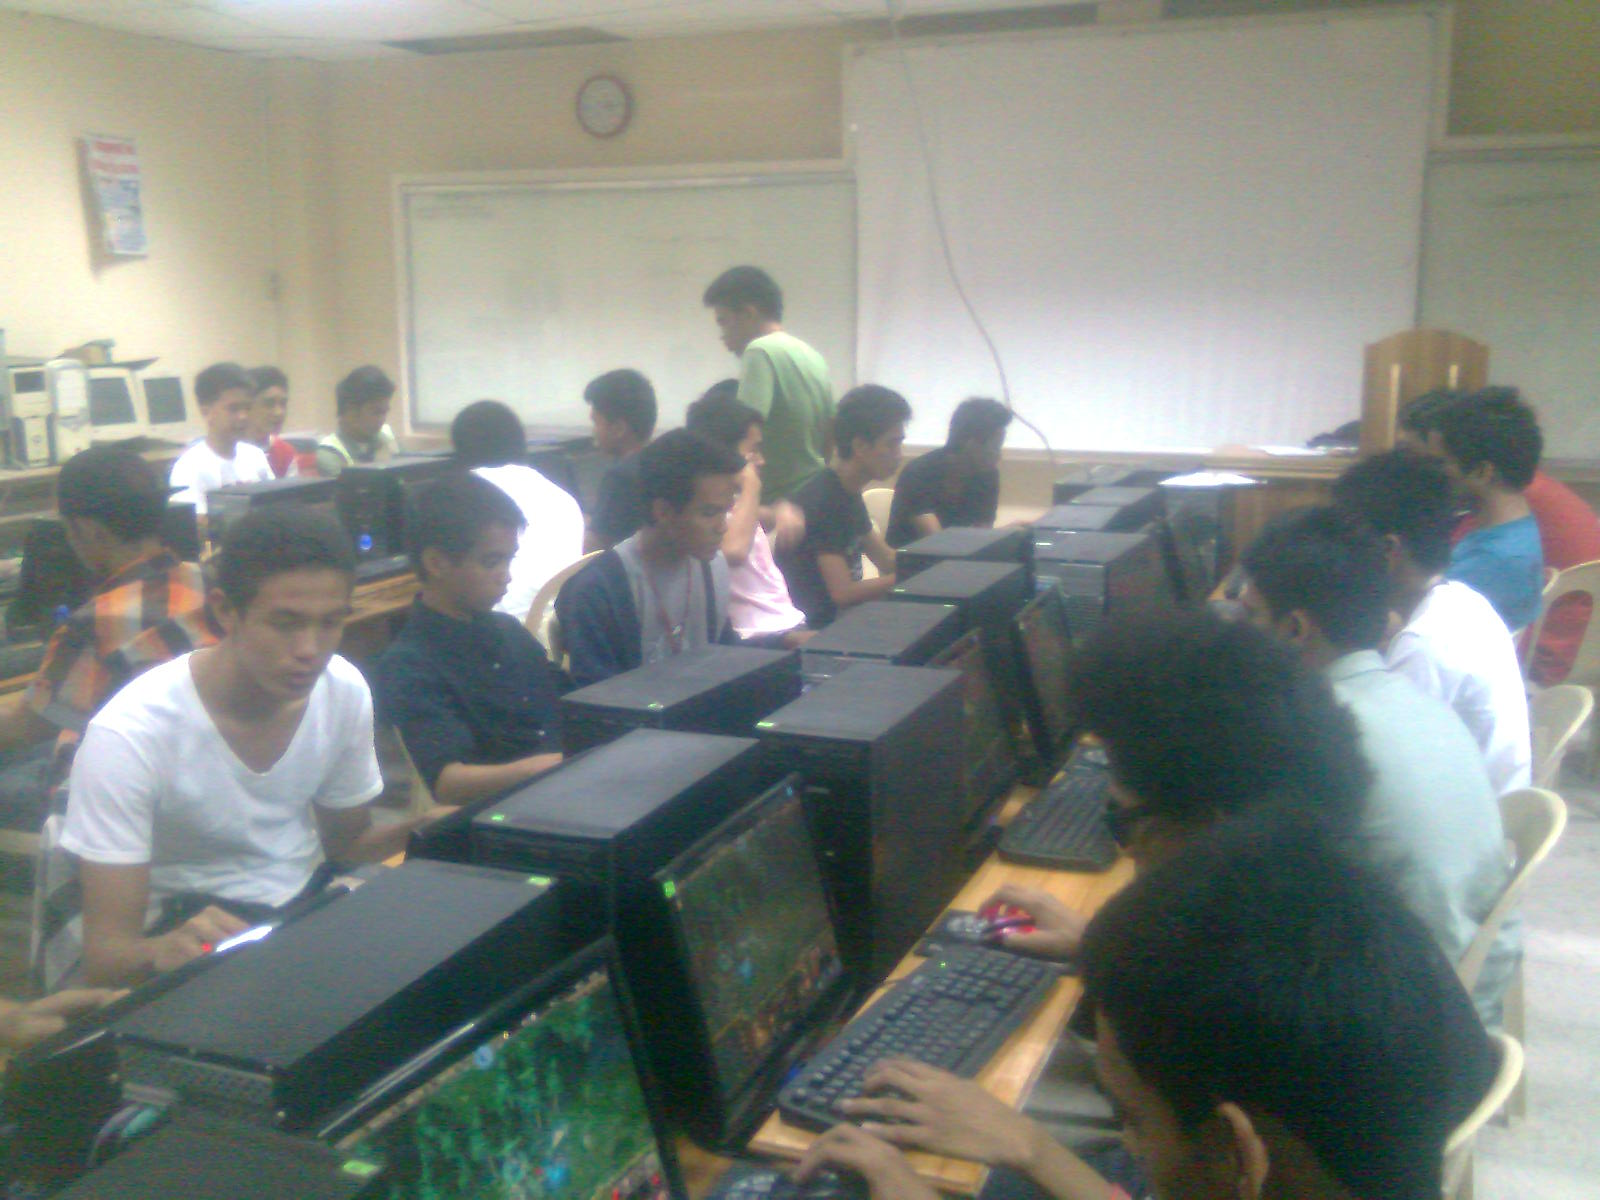 Universities will be offering DOTA degrees according to PinoyTrending